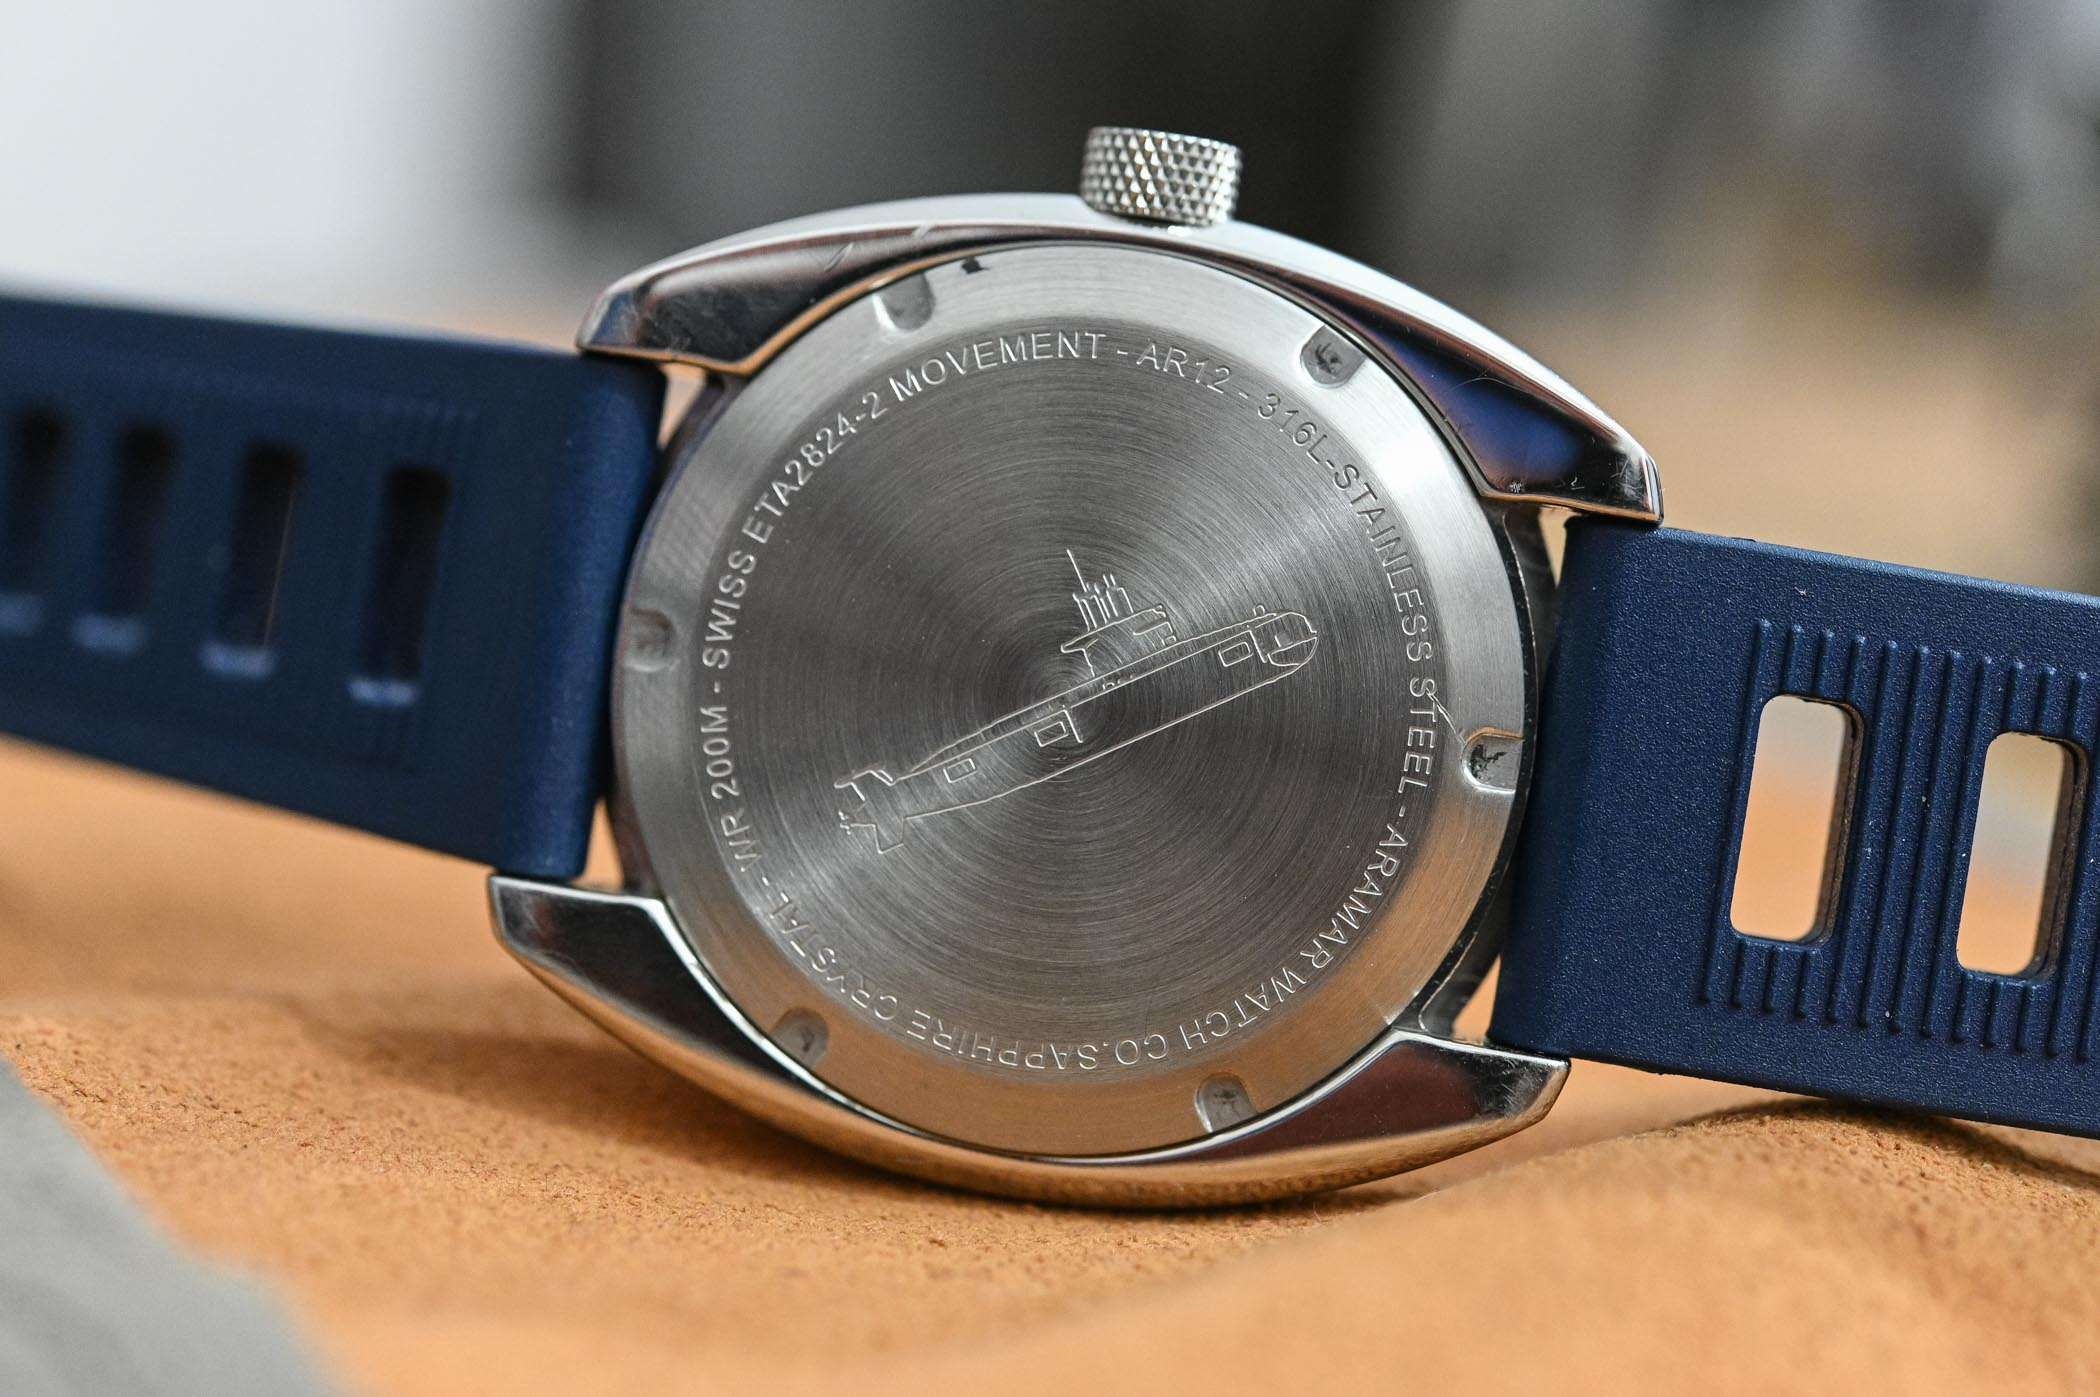 Aramar Walrus Dive Watch - Value Proposition Kickstarter